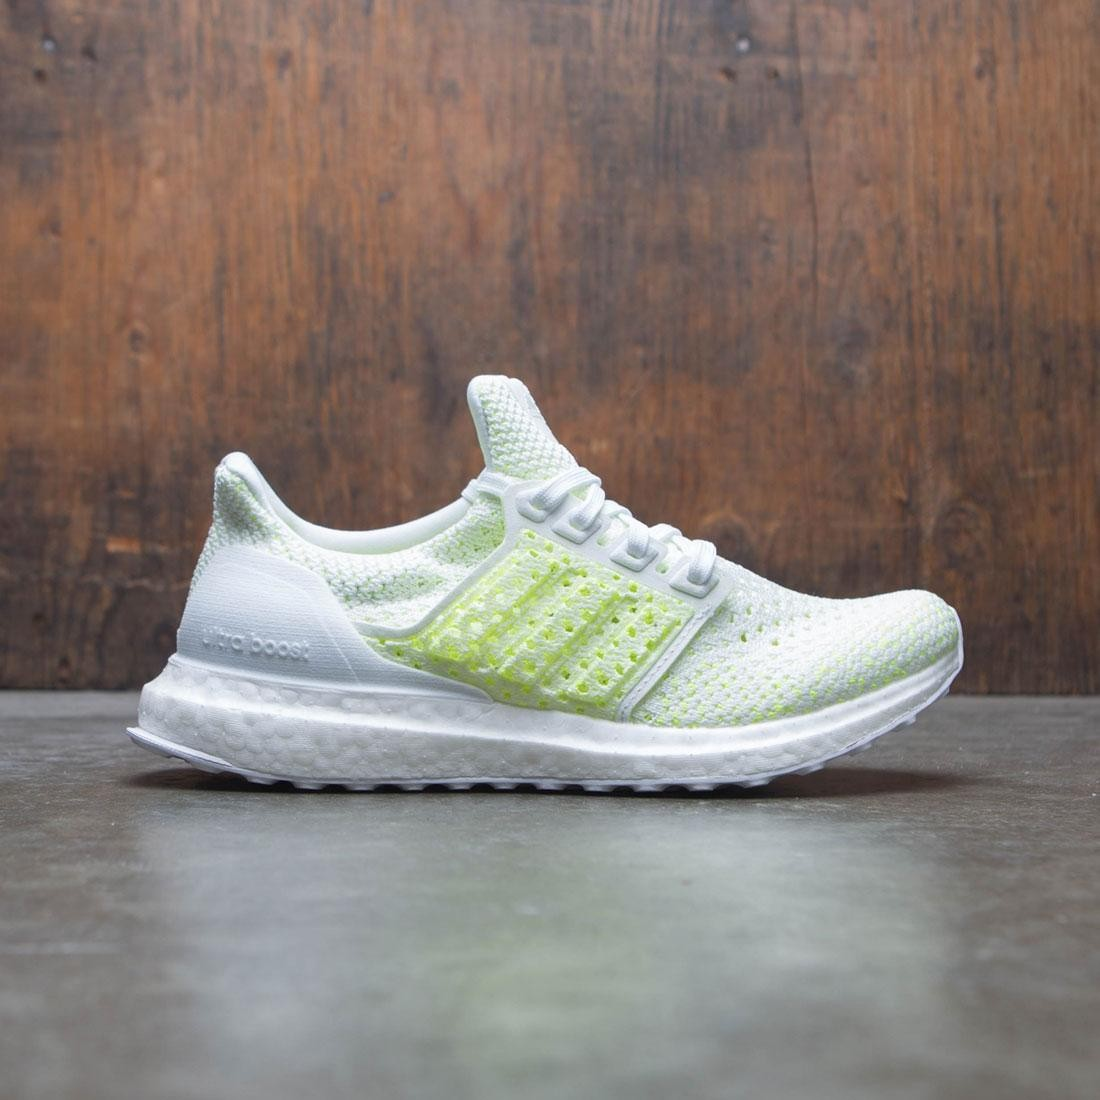 ce59016759d8 Adidas Big Kids UltraBOOST Clima J white footwear white shock yellow